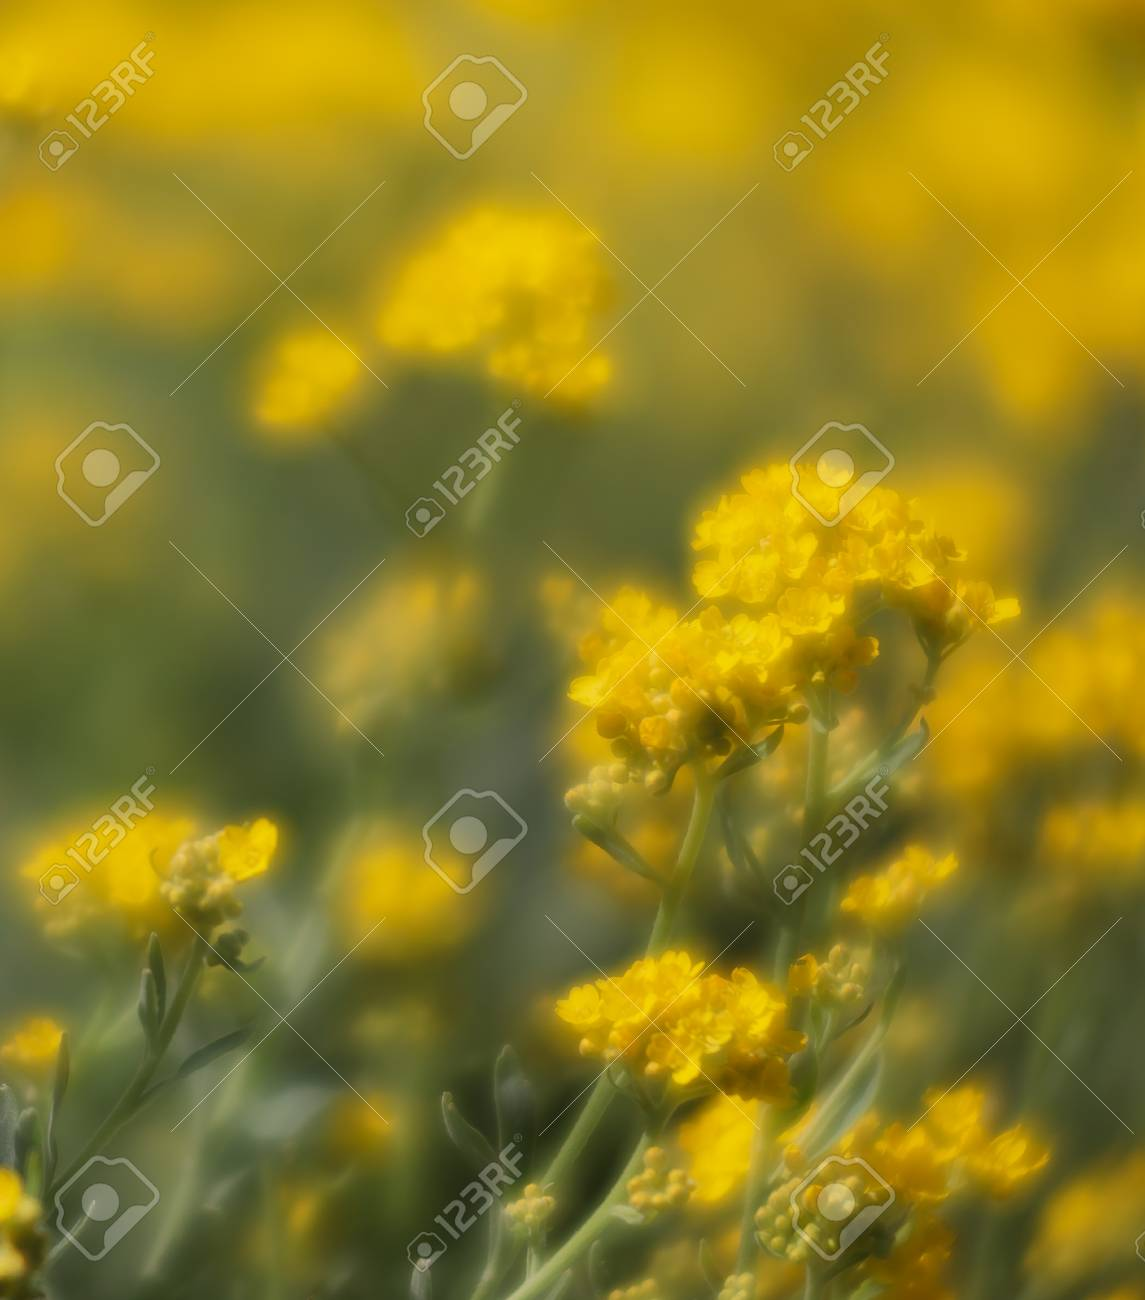 Soft focus image of small yellow flowers of aurinia saxatilis soft focus image of small yellow flowers of aurinia saxatilis in the spring time in the mightylinksfo